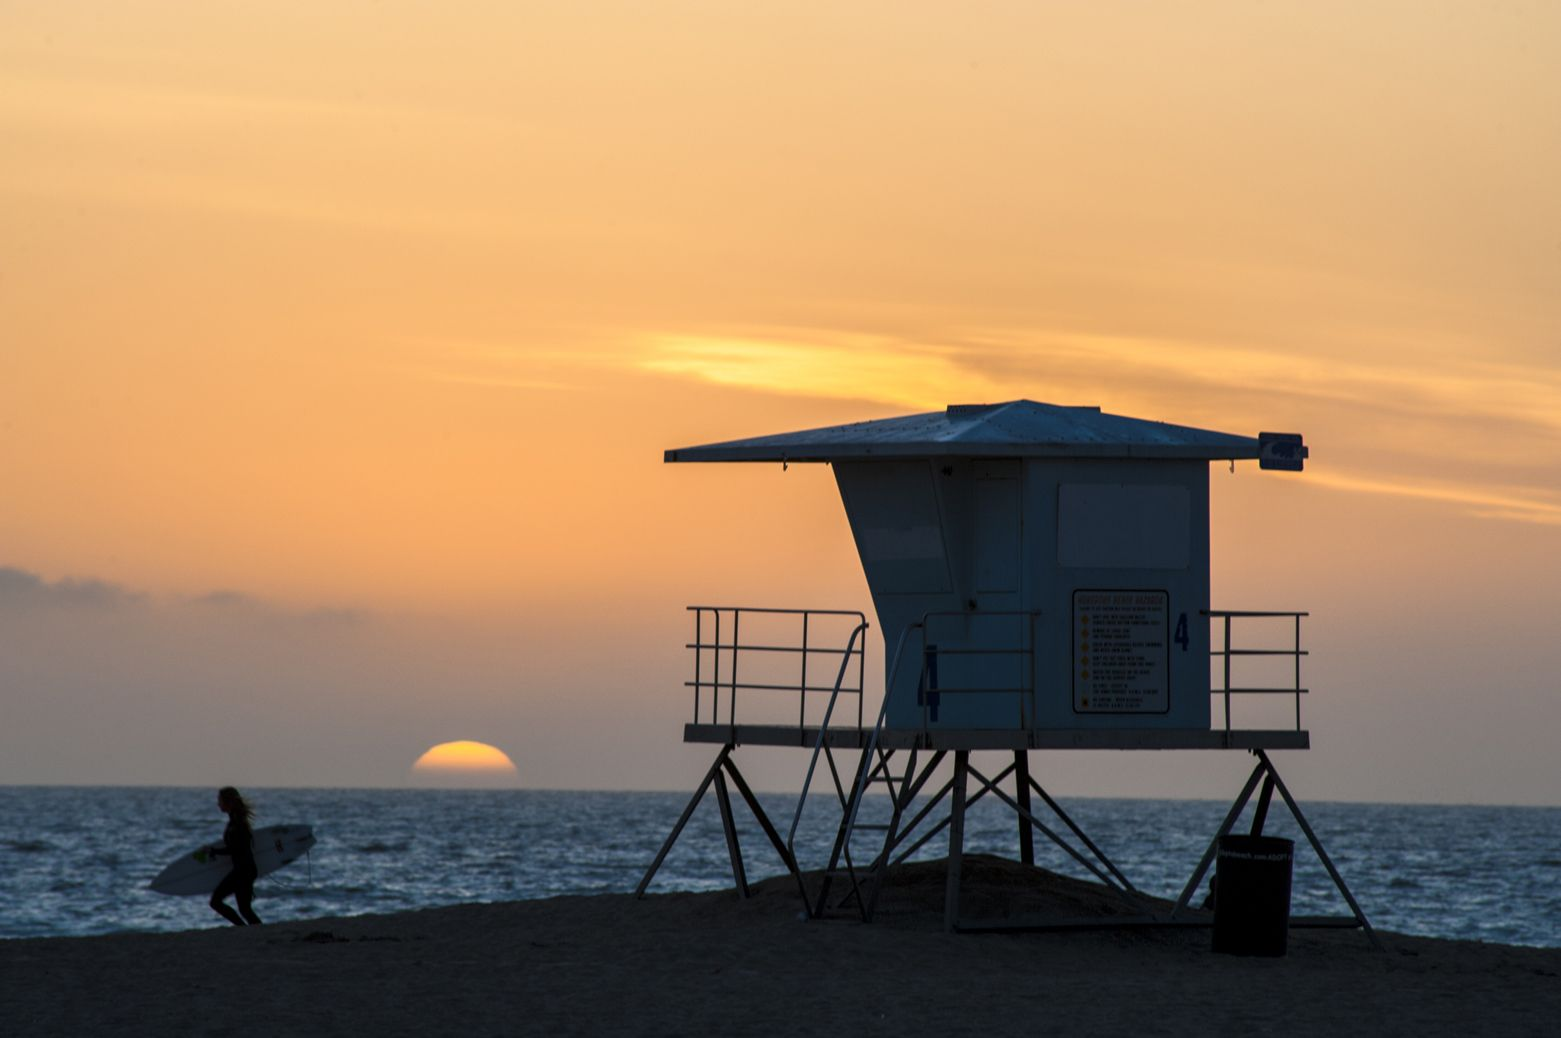 lifeguard tower with sunset